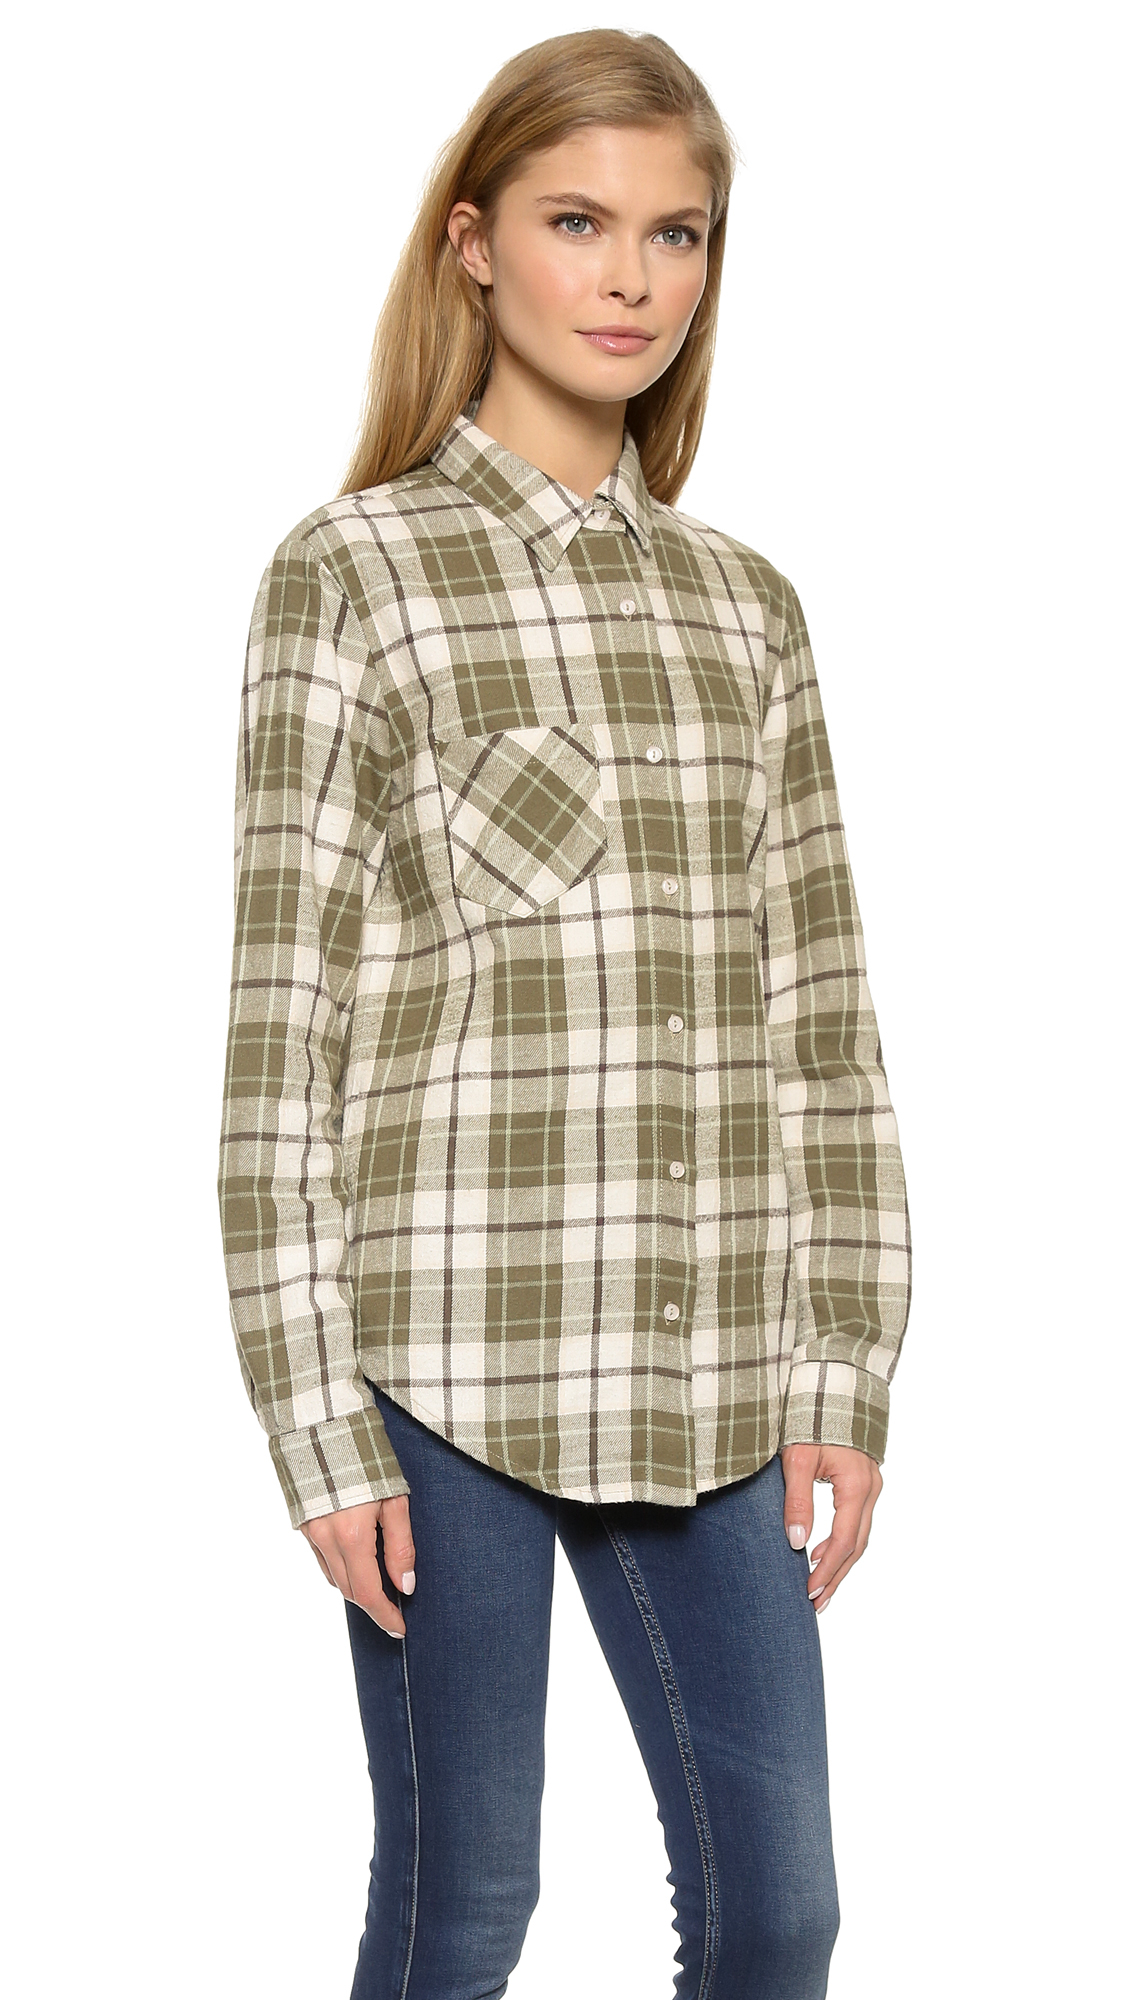 Lyst Anine Bing Plaid Shirt Olive In Green